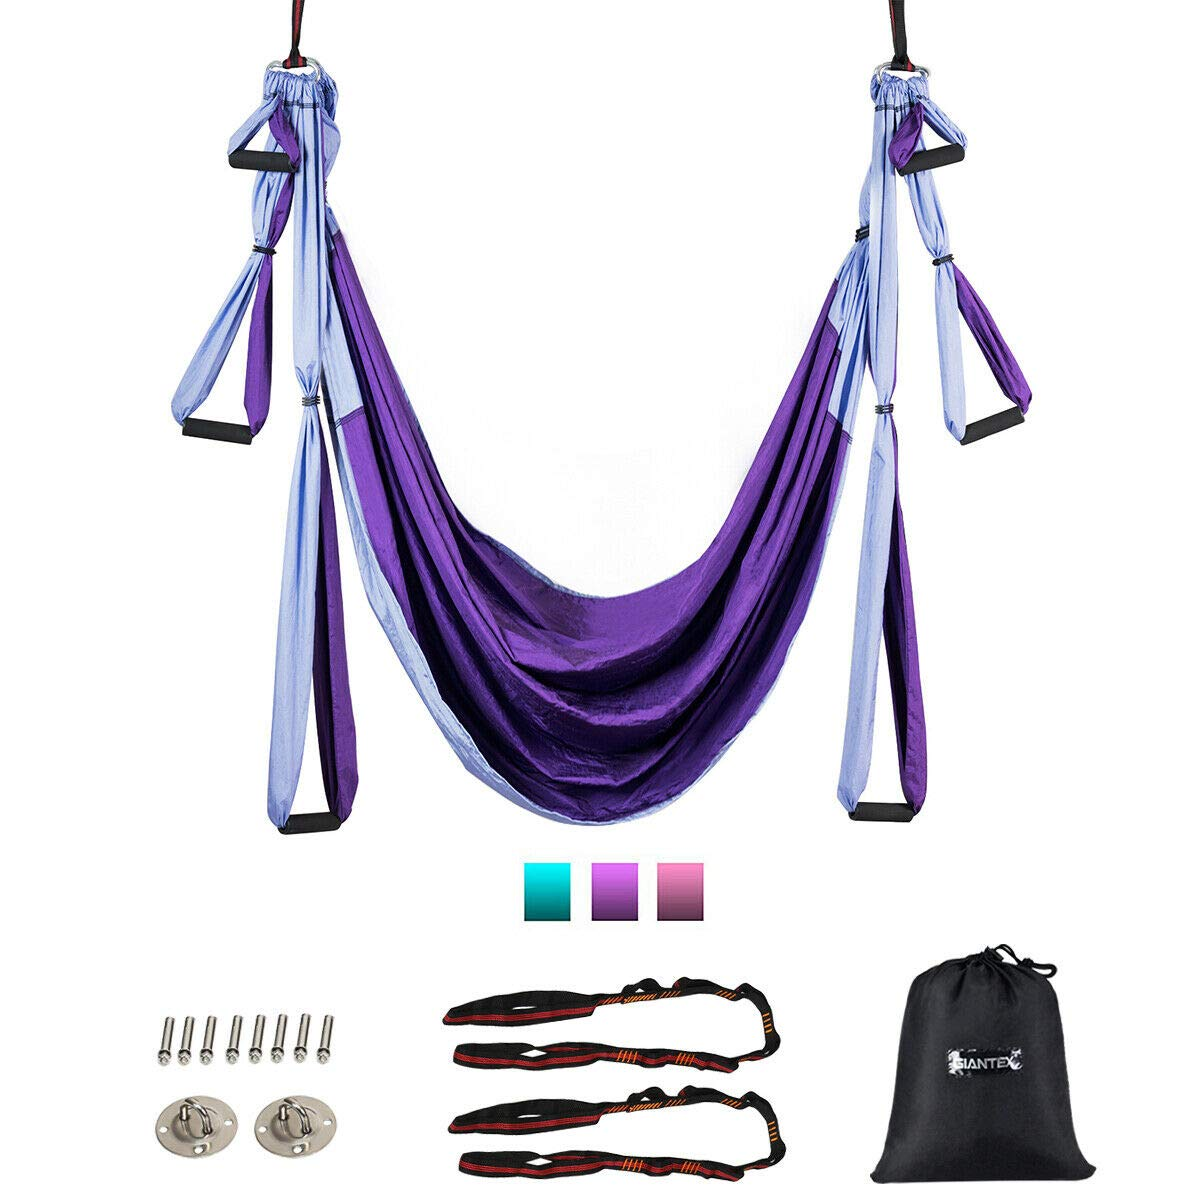 GOPLUS Aerial Yoga Swing Set, Antigravity Ceiling Hanging Toga Sling with Three Different Lengths of Handle, Yoga Swing Sling Inversion Tool, Yoga Hammock